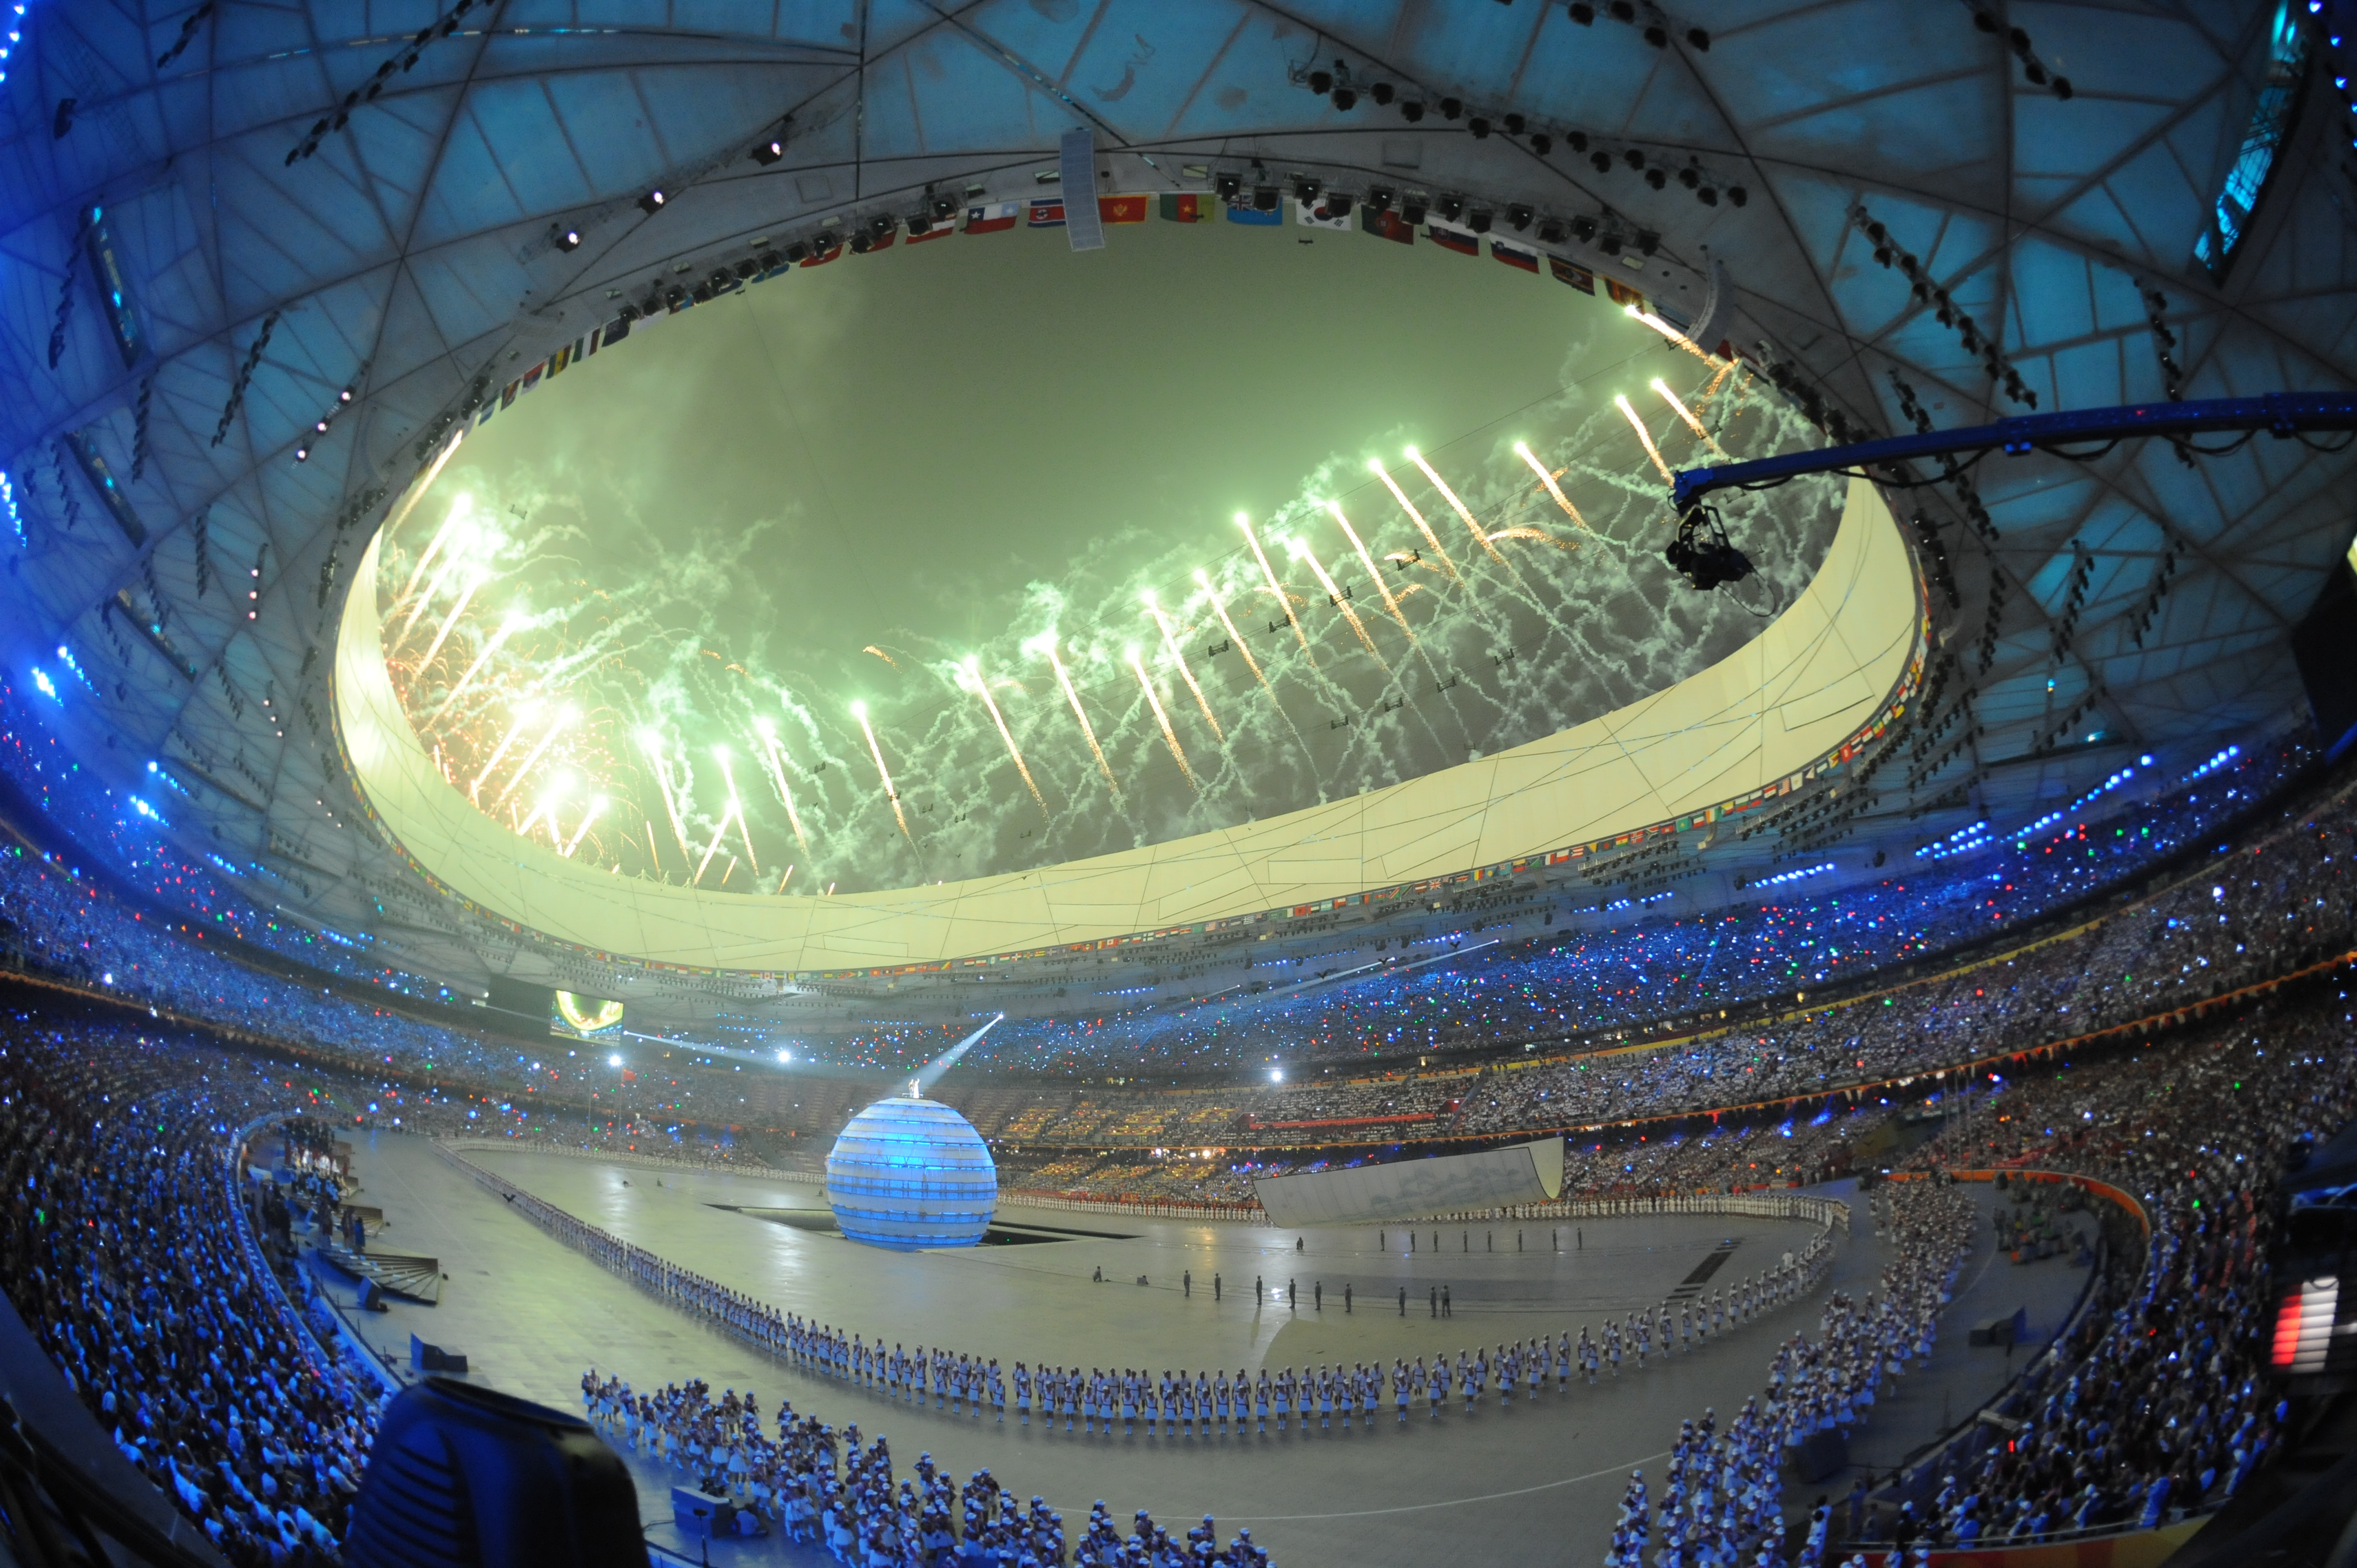 The march of nations featured Olympic athletes from 205 countries, led into the stadium by Greece (in accordance with tradition). The host team from China